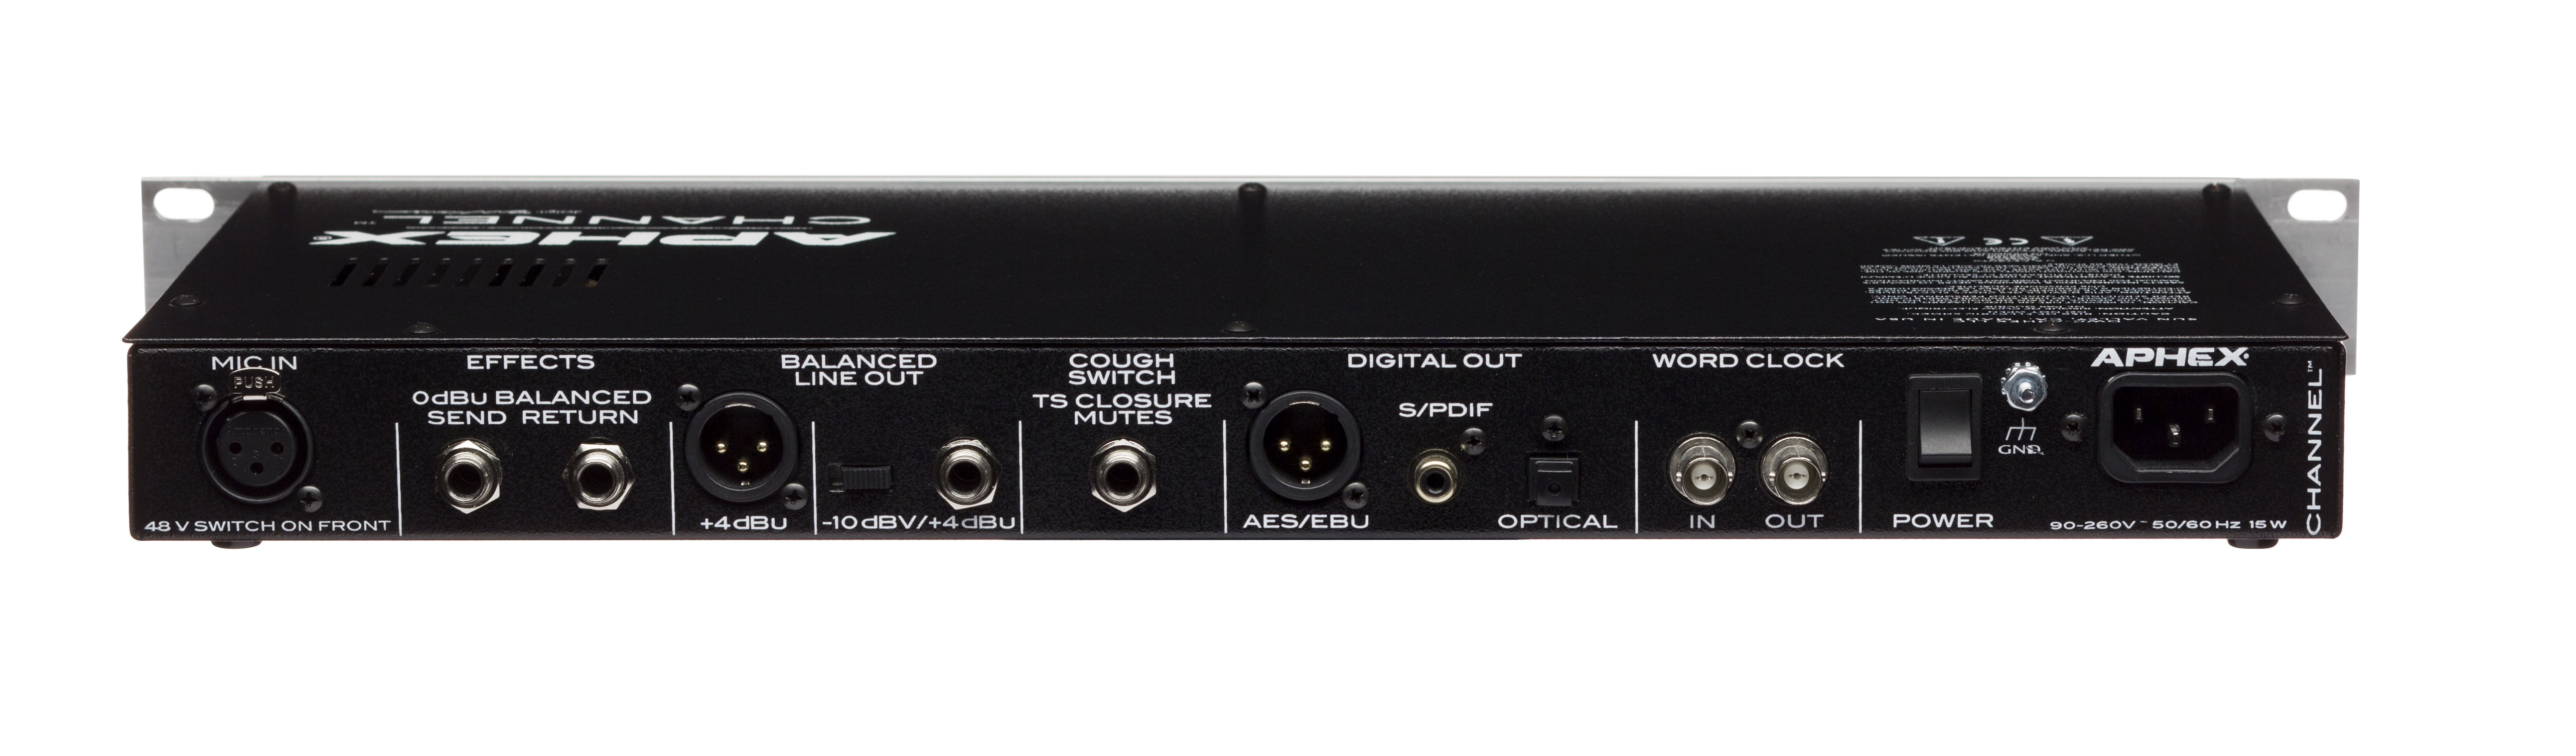 Channel Products For Professional Audio Recording Broadcast Dynamic Mic Preamplifier Other Specifications